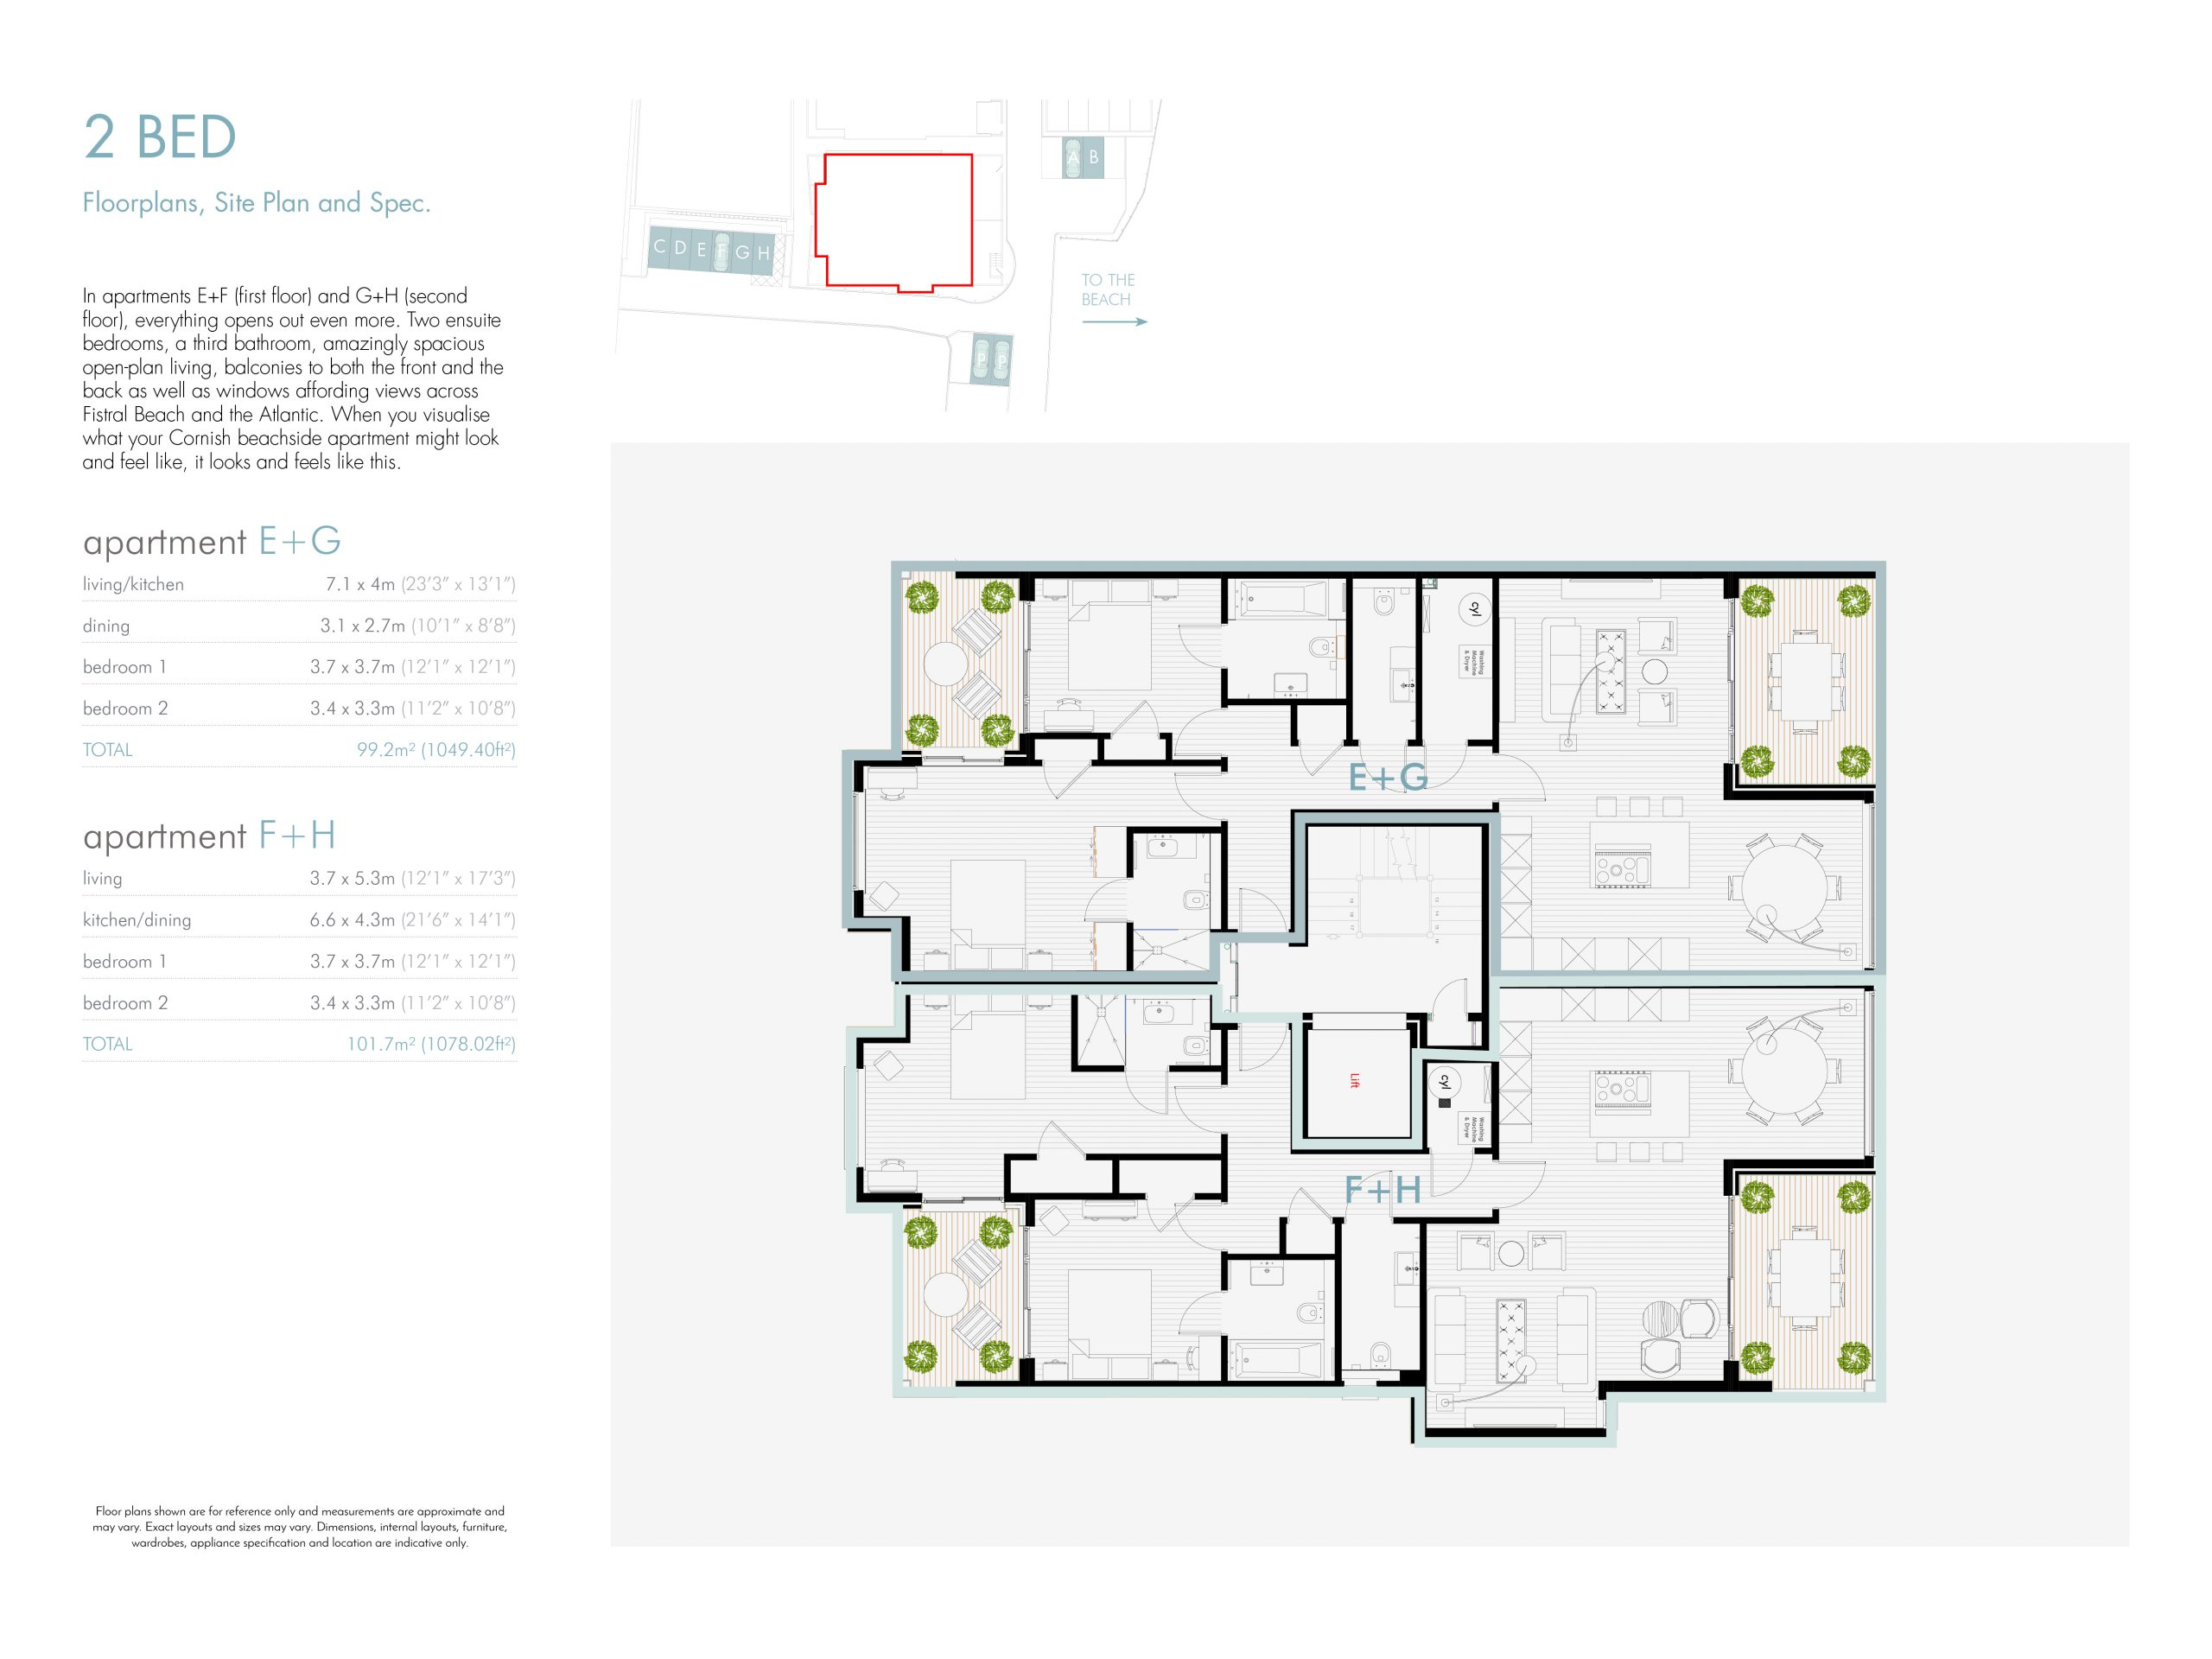 Stephens and stephens developers Saltwater pentire avenue newquay cornwall Floorplans 1200x900 2 bed